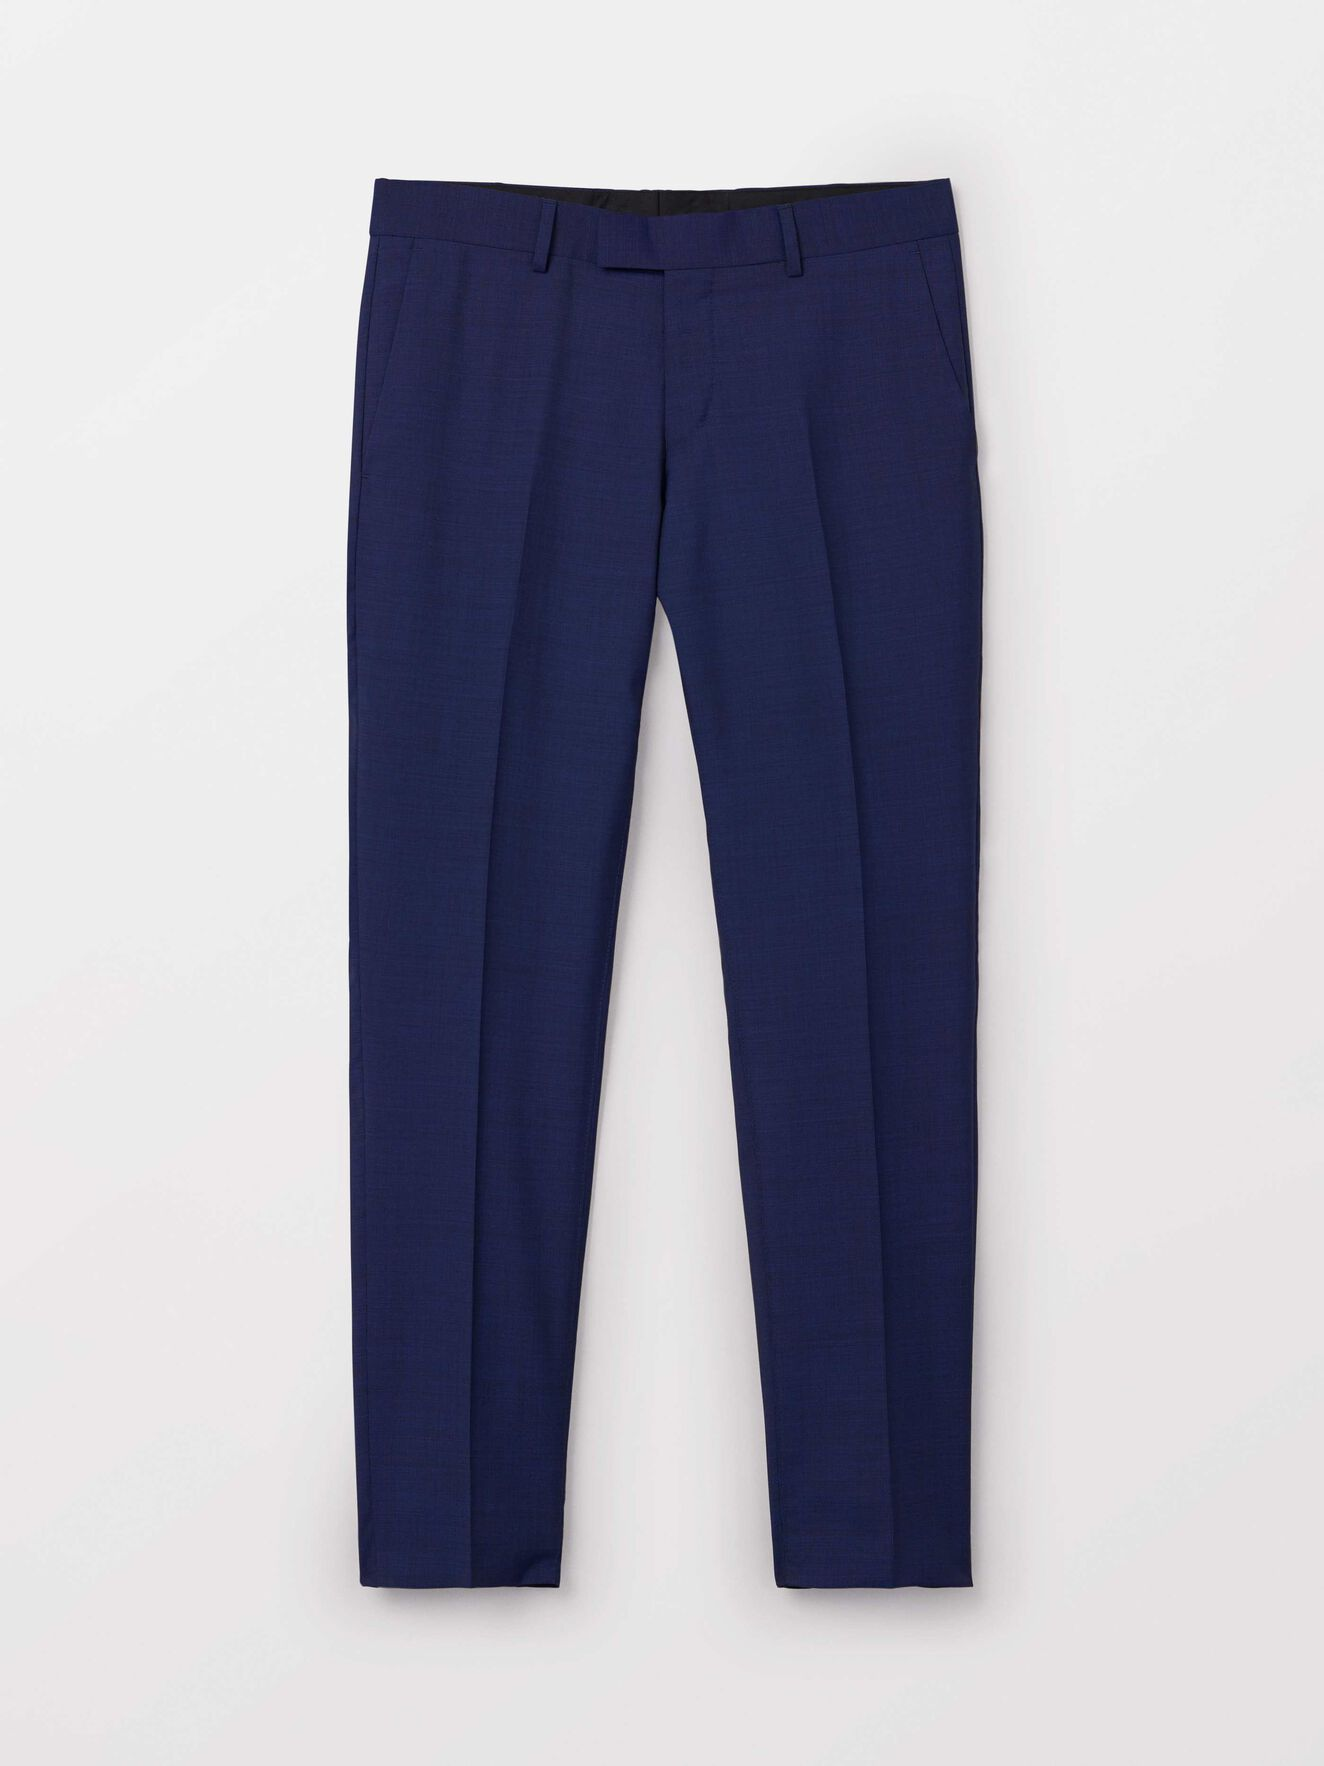 Tordon Hose in Deep Ocean Blue from Tiger of Sweden